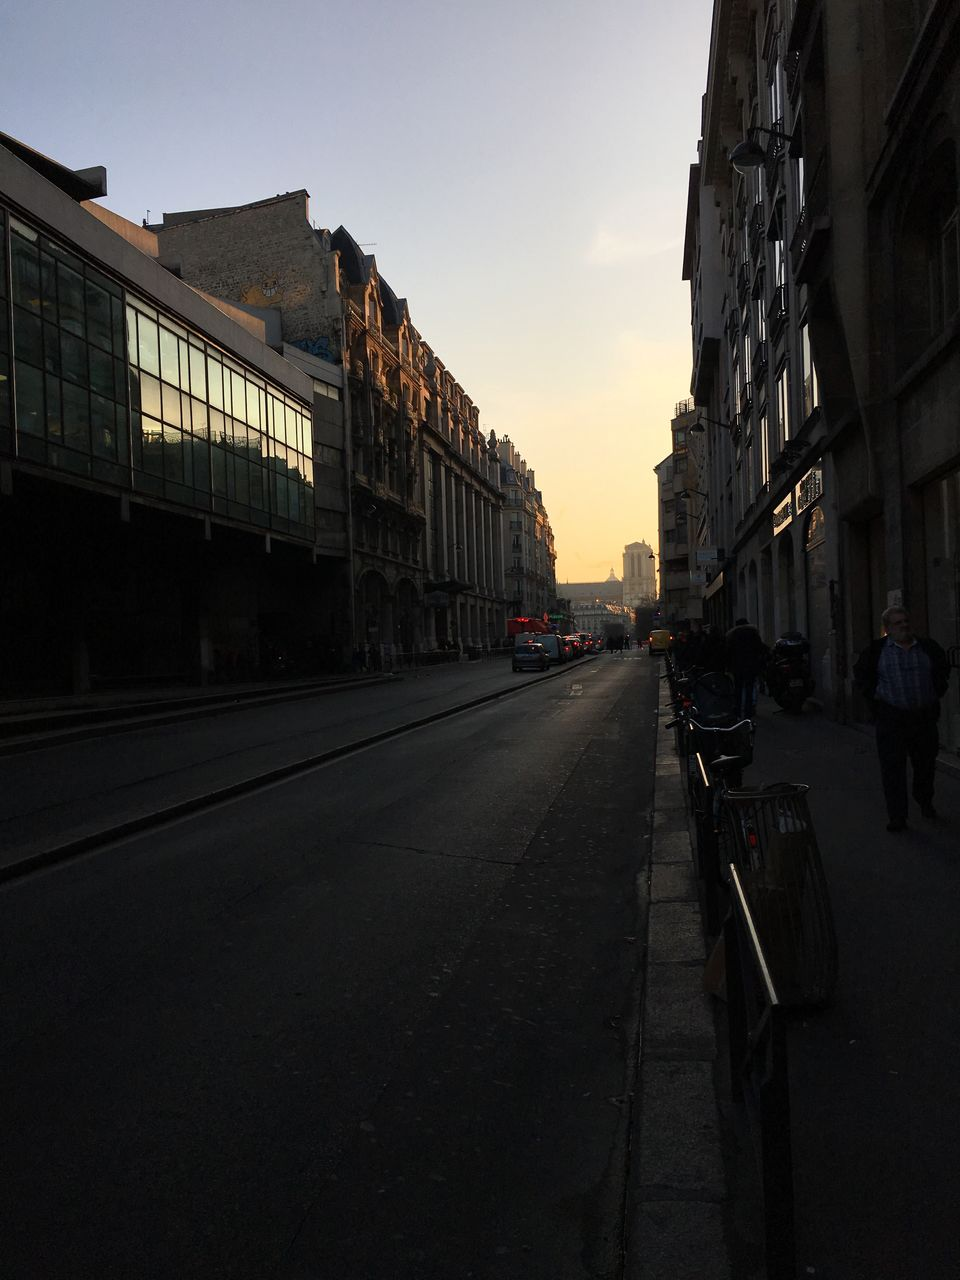 architecture, built structure, building exterior, transportation, land vehicle, city, street, road, sunset, car, mode of transport, outdoors, sky, real people, day